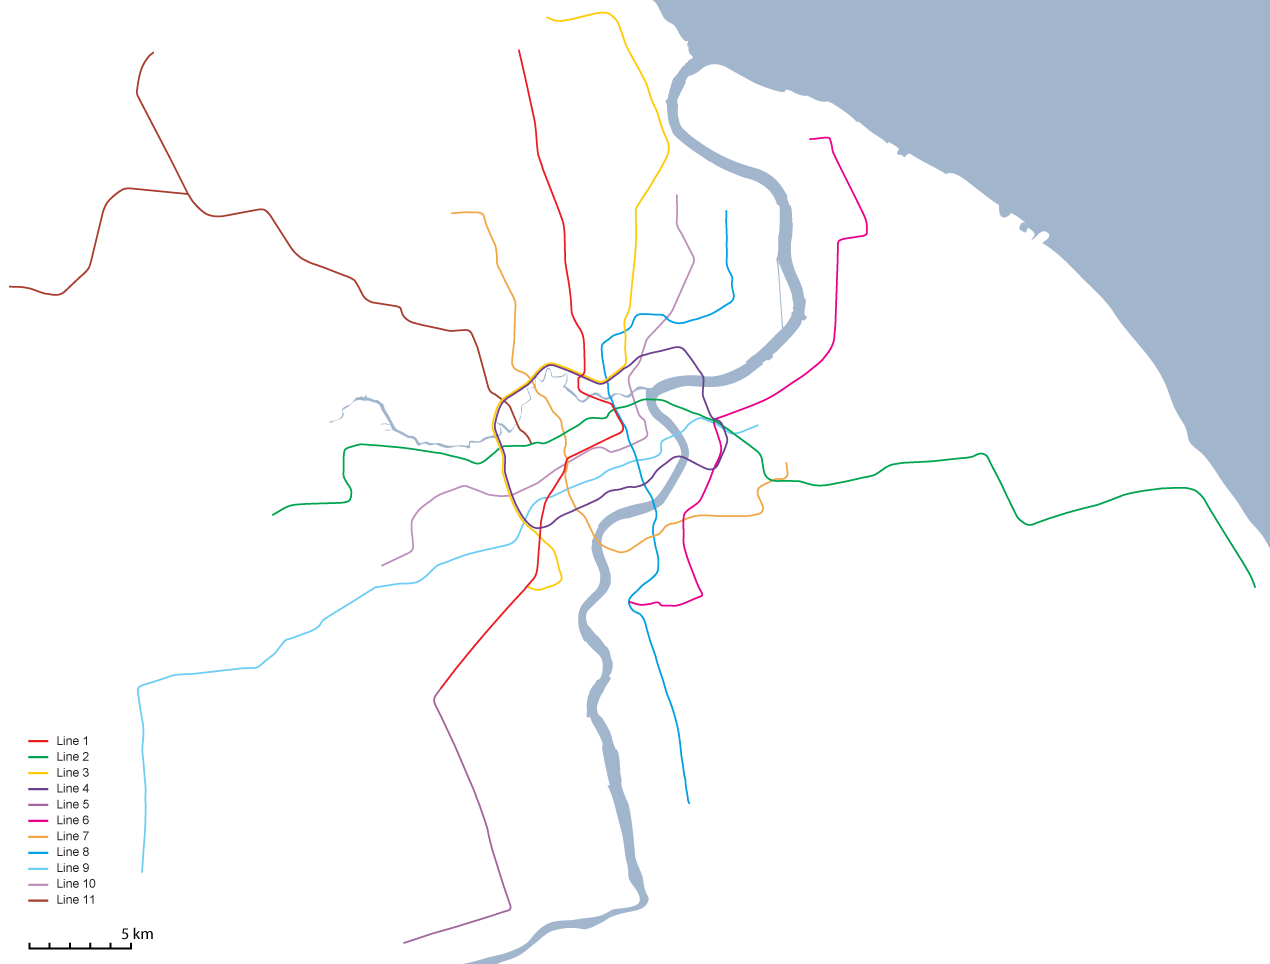 Subway Map Shanghai 2011.Bricoleurbanism Shanghai S Metro And London S Tube Head To Head